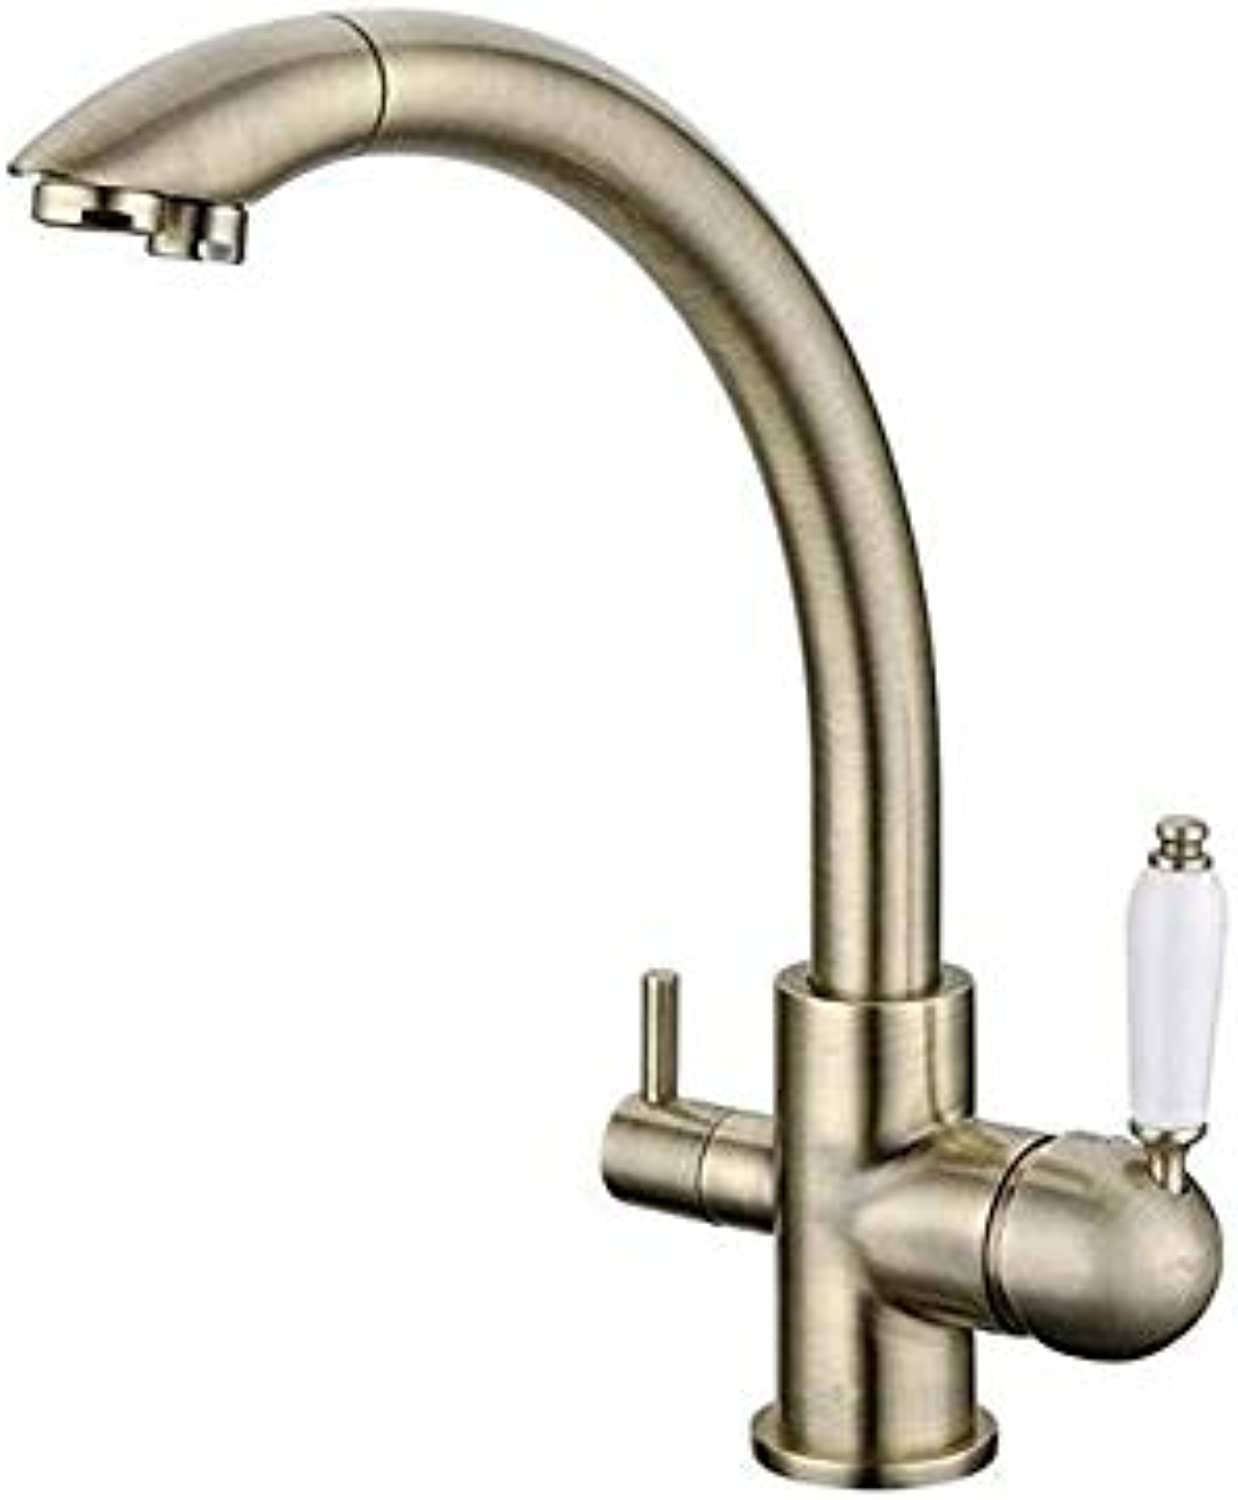 Pull-Out Kitchen hot and Cold tap wash Pot Telescopic Swivel Dishwasher tap